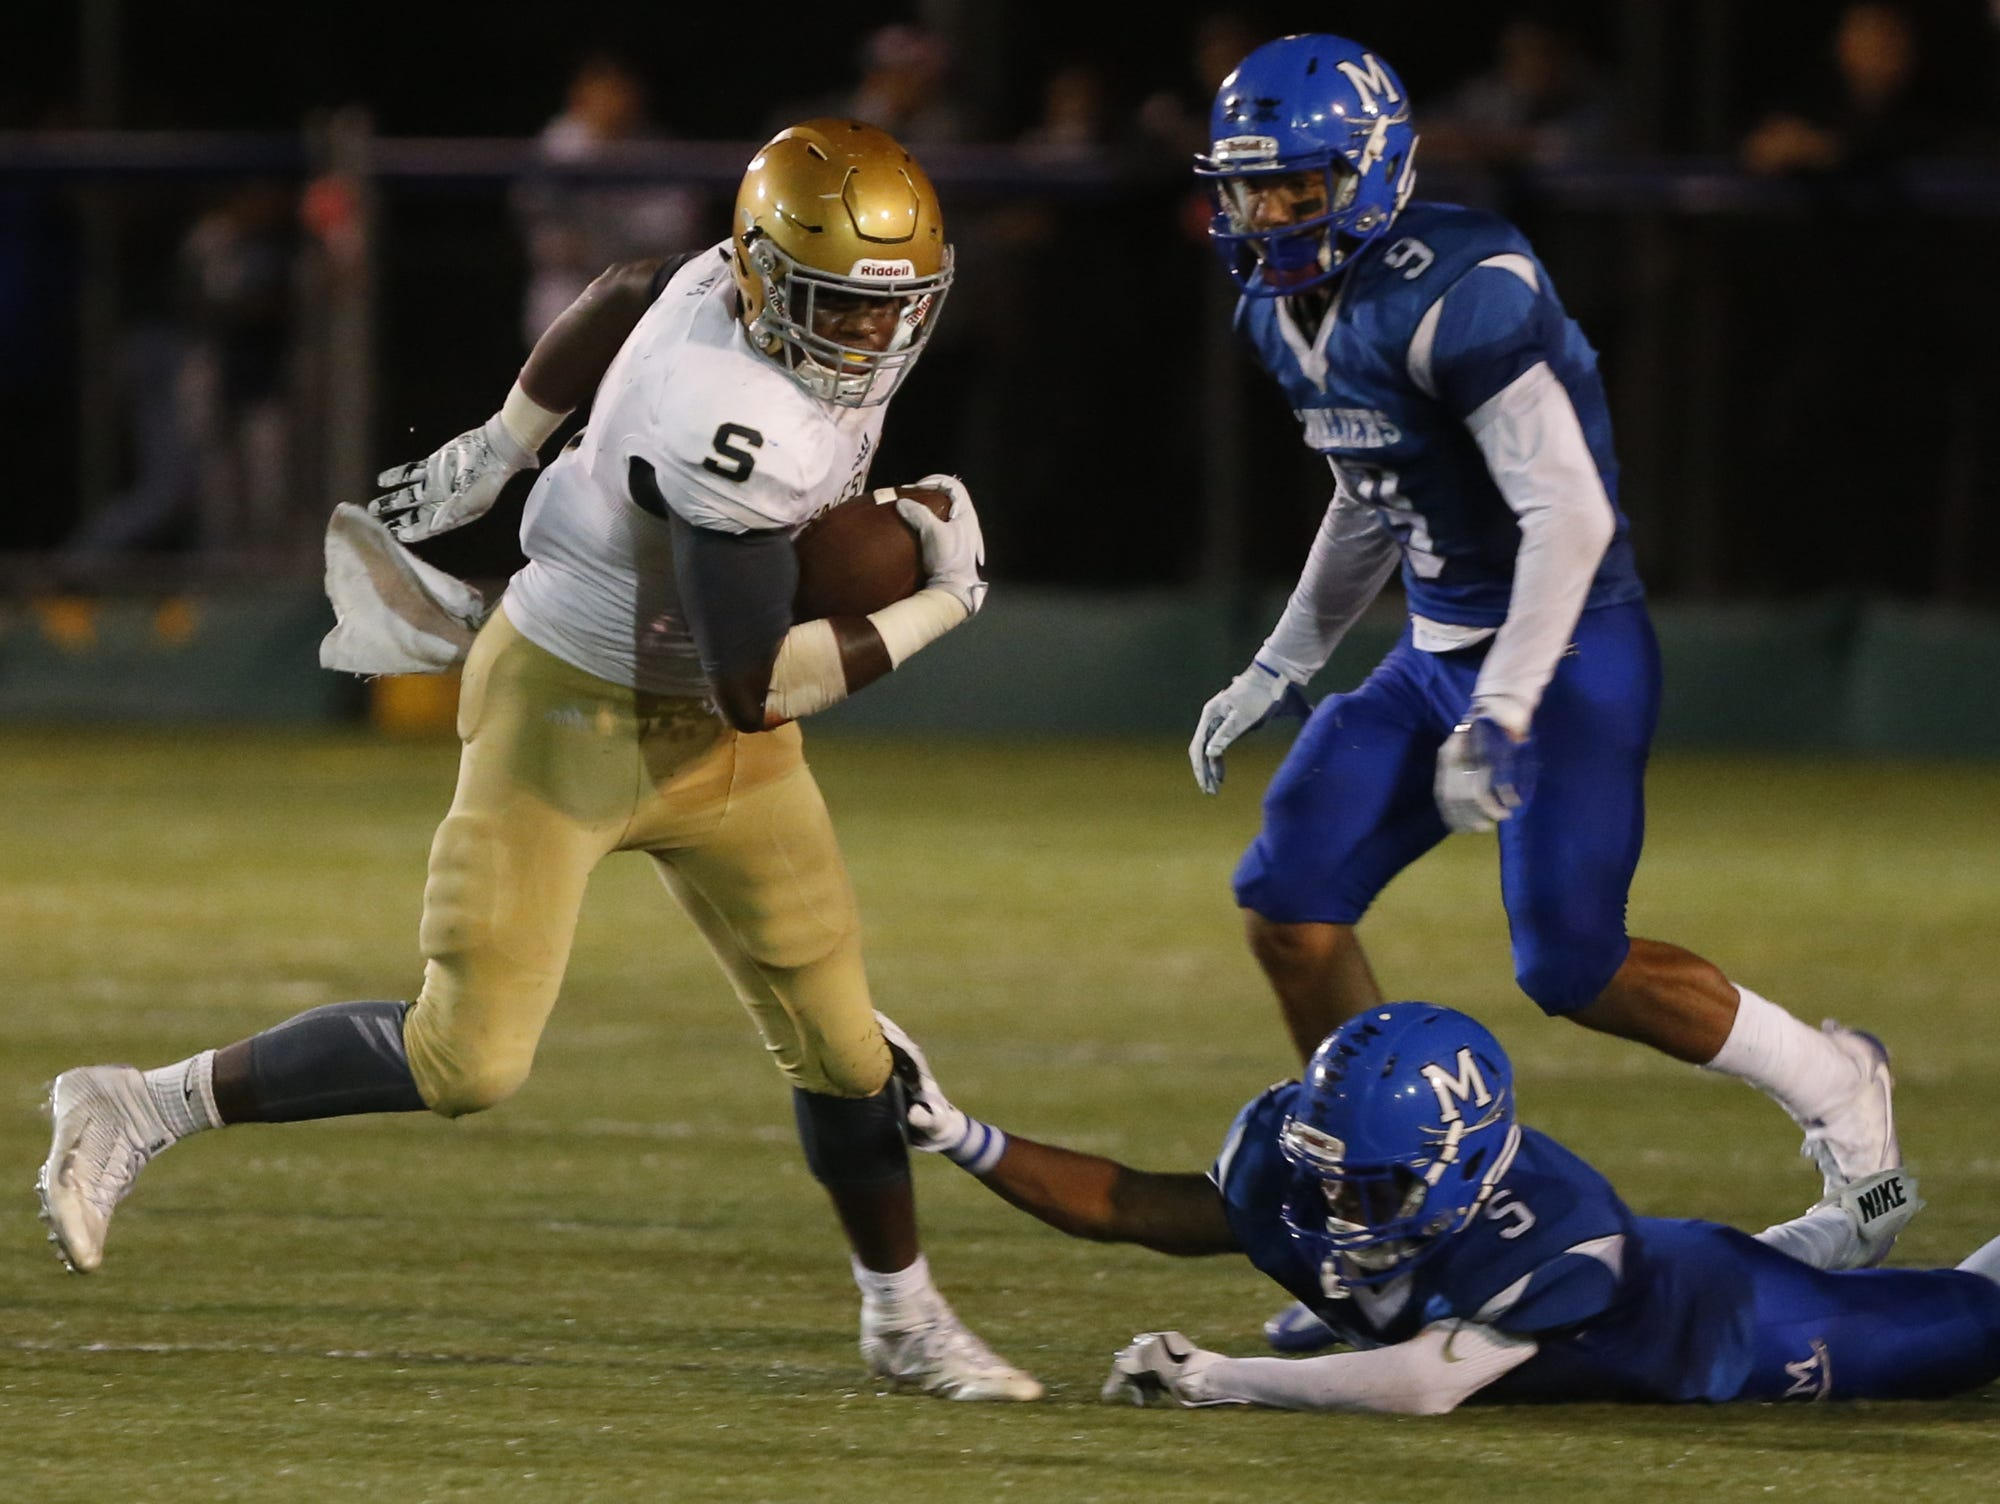 Salesianum's Josh Patrick gets away from Middletown's Shane Wilkins (9) and Ernest Washington on a long run in the second quarter at Cavalier Stadium Friday.